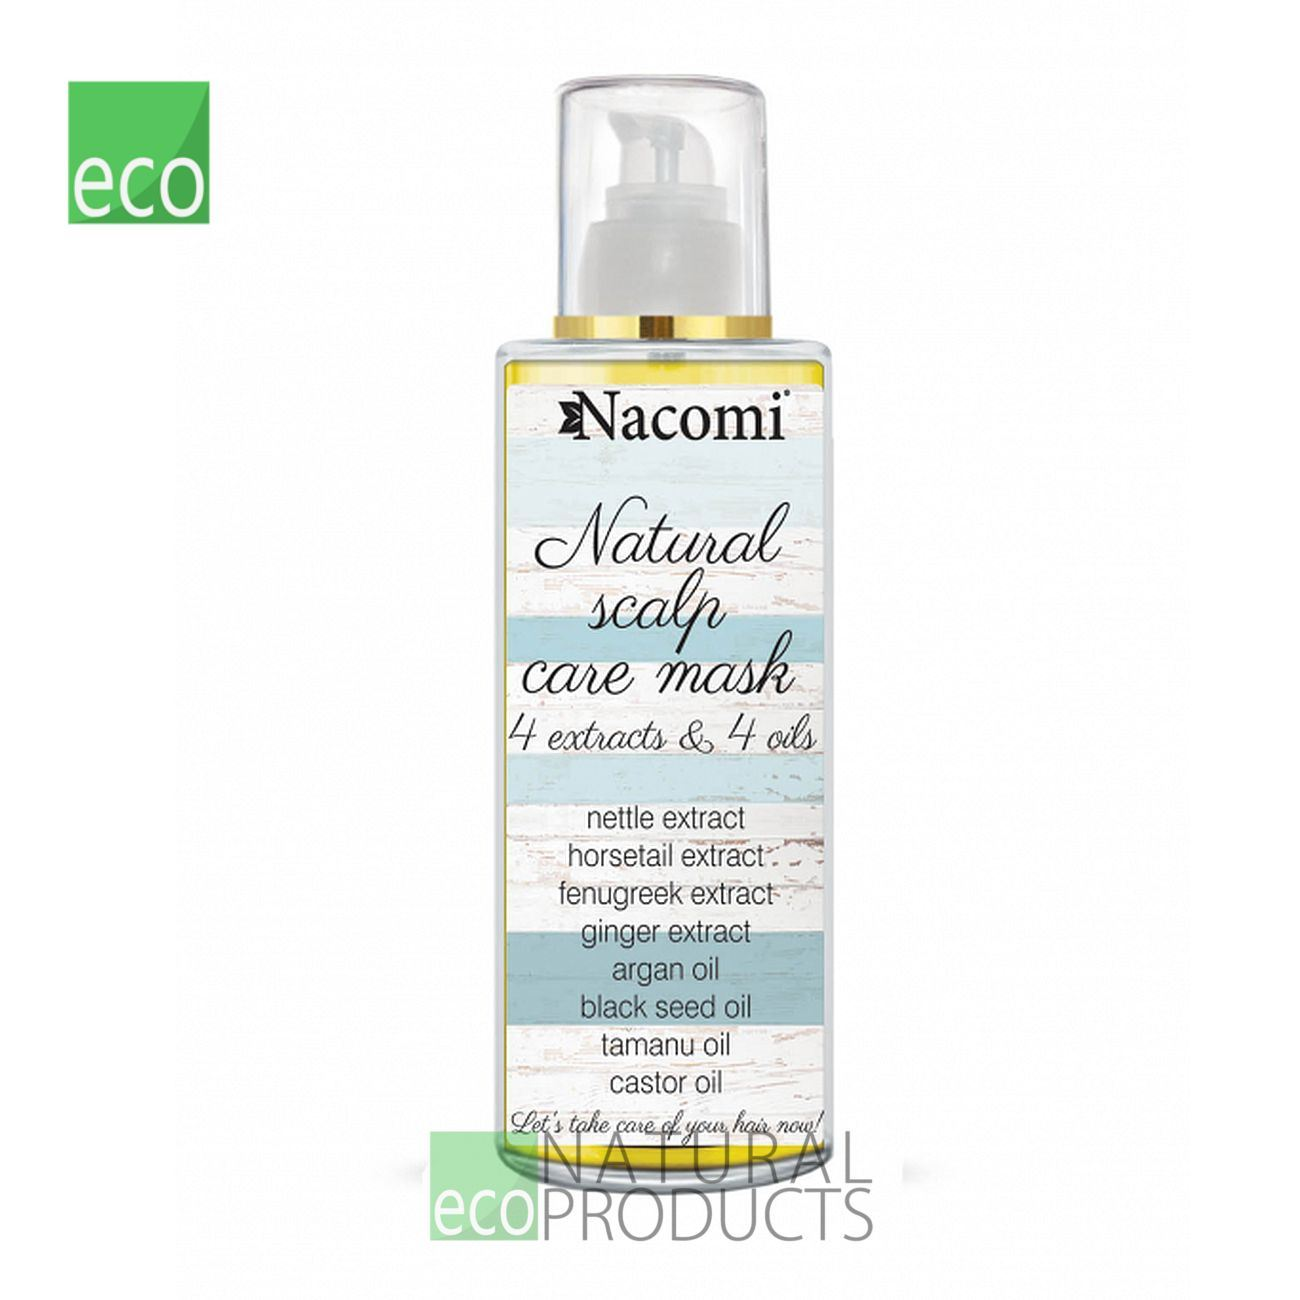 Details about Nacomi Natural Scalp Care Mask 4 Extracts and 4 Oils 50ml